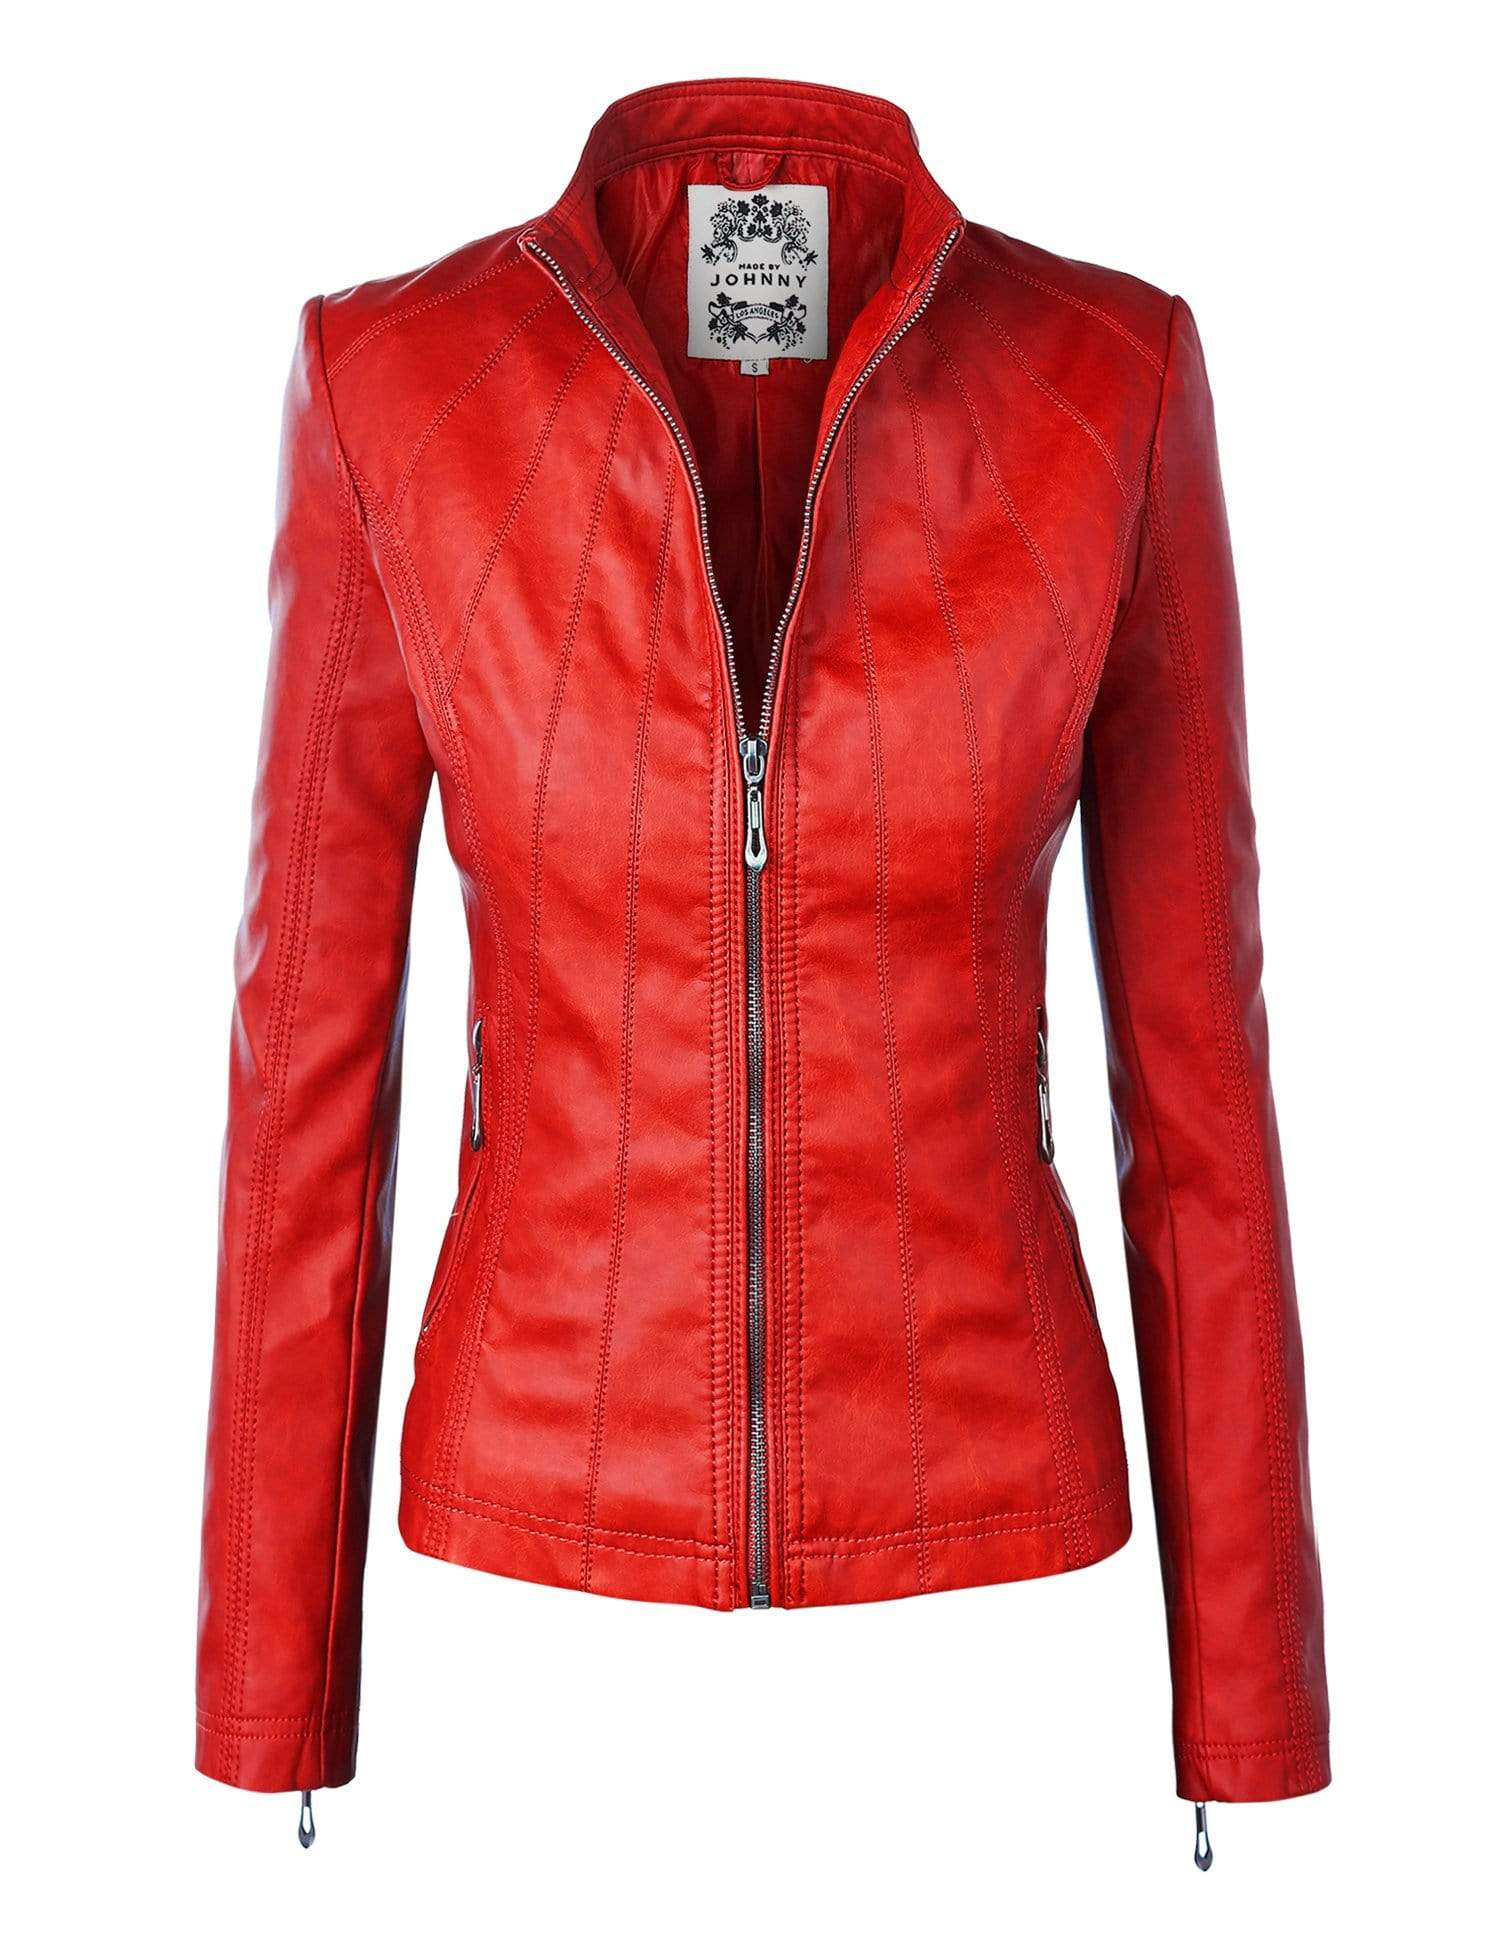 DAILYHAUTE Women's jacket RED / XS Made By Johnny MBJ Womens Faux Leather Zip Up Moto Biker Jacket with Stitching Detail